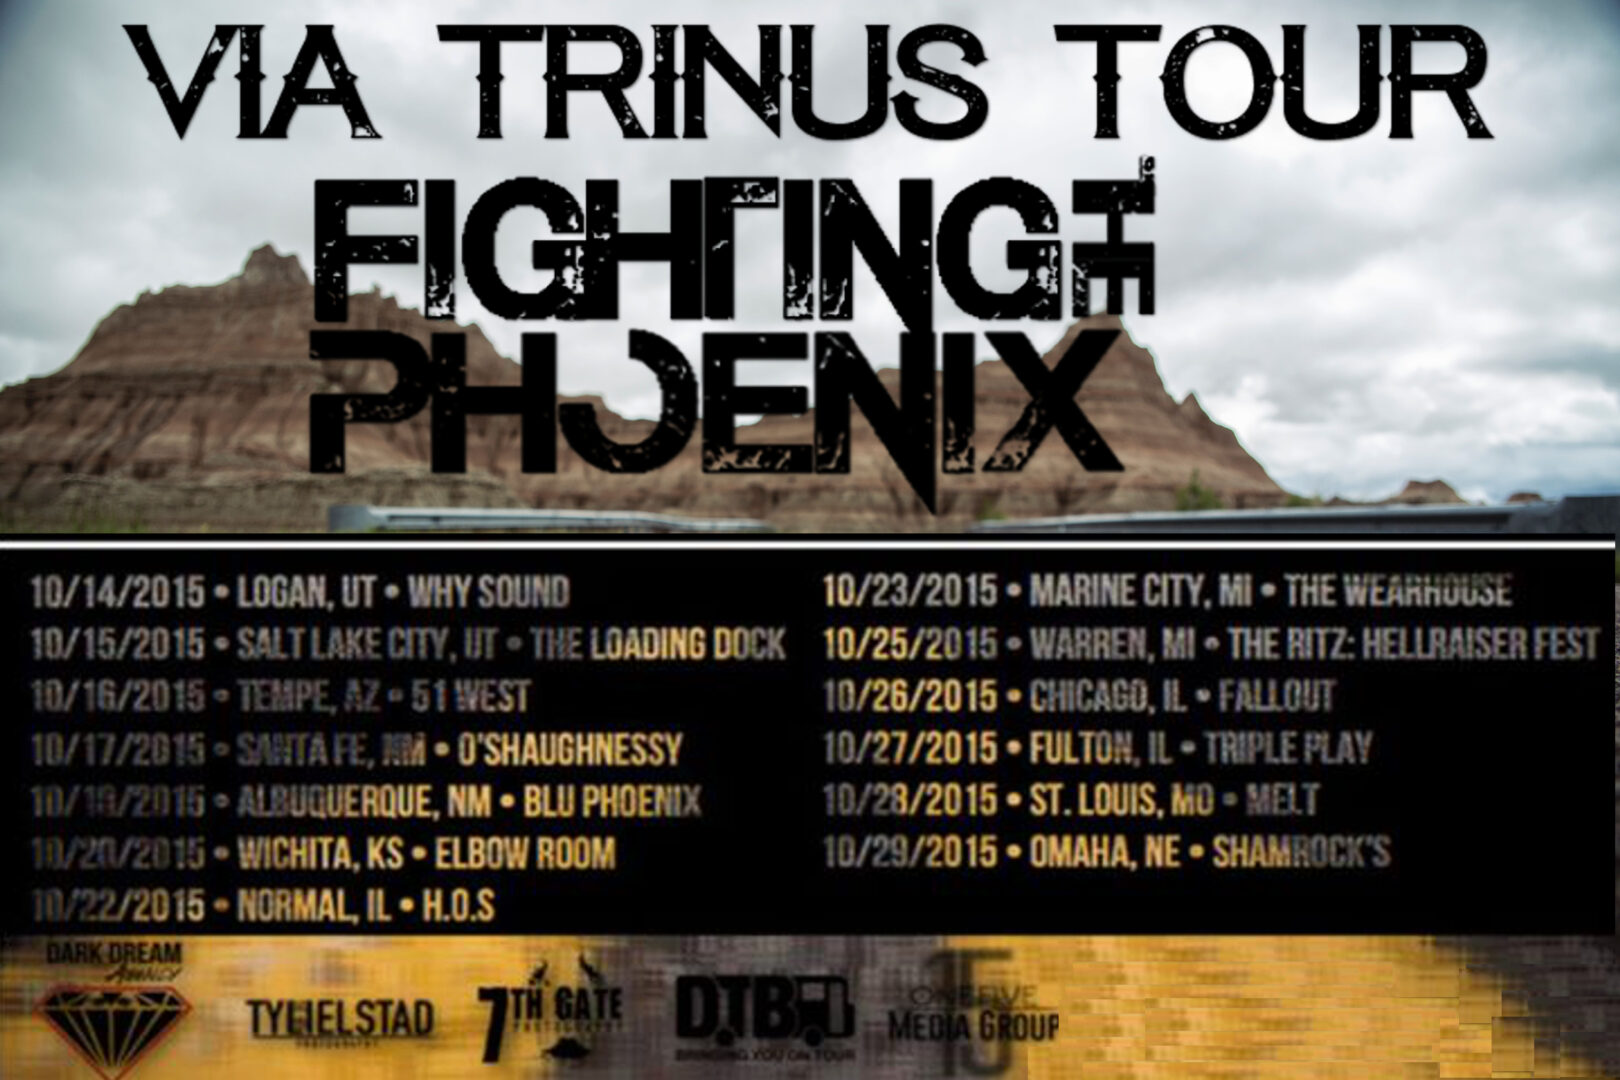 Fighting The Phoenix - Via Trinus Tour - poster